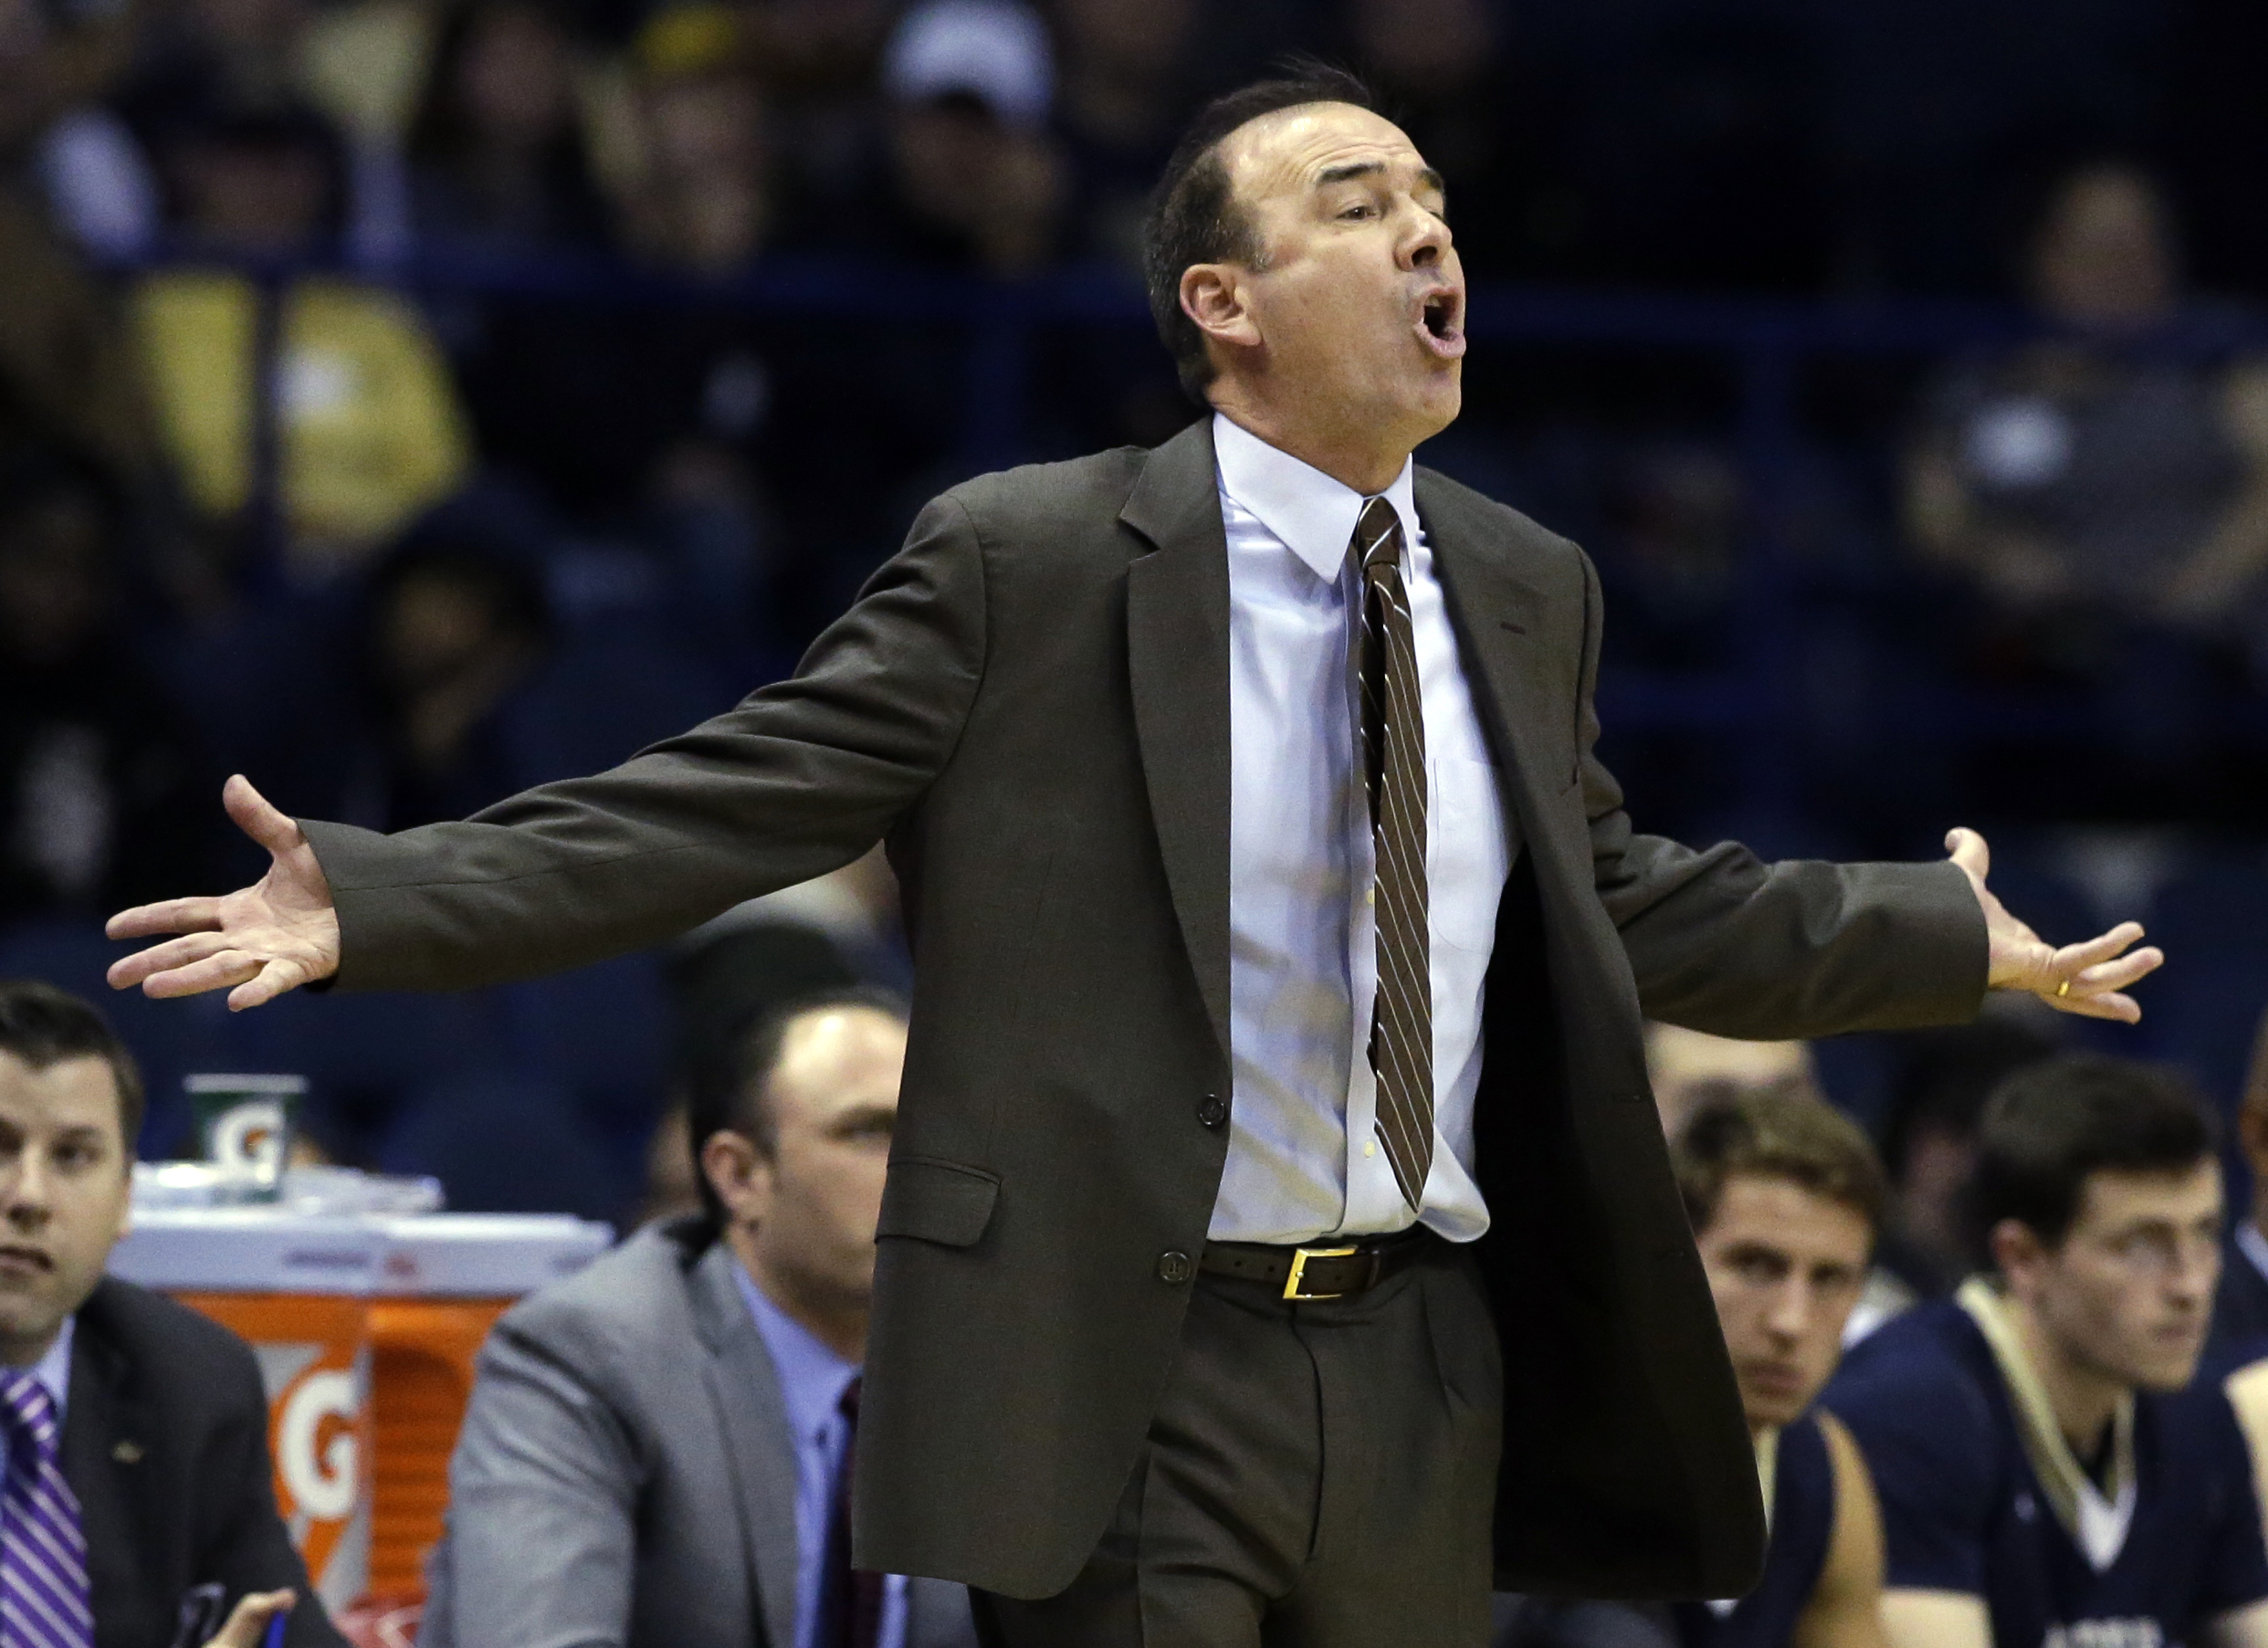 George Washington University fires head coach after claims of player abuse